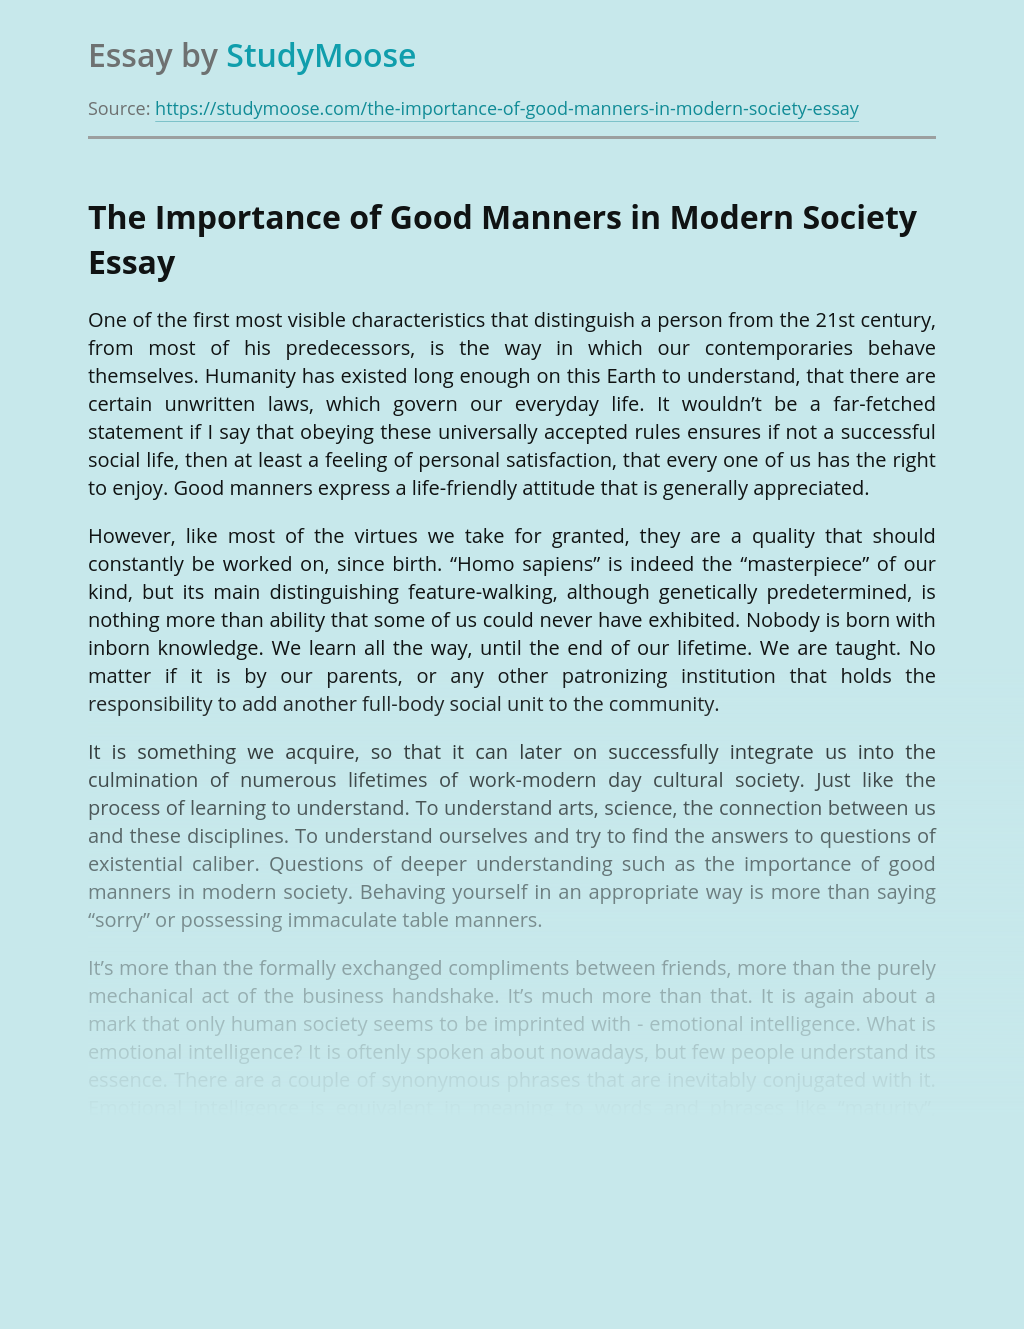 The Importance of Good Manners in Modern Society